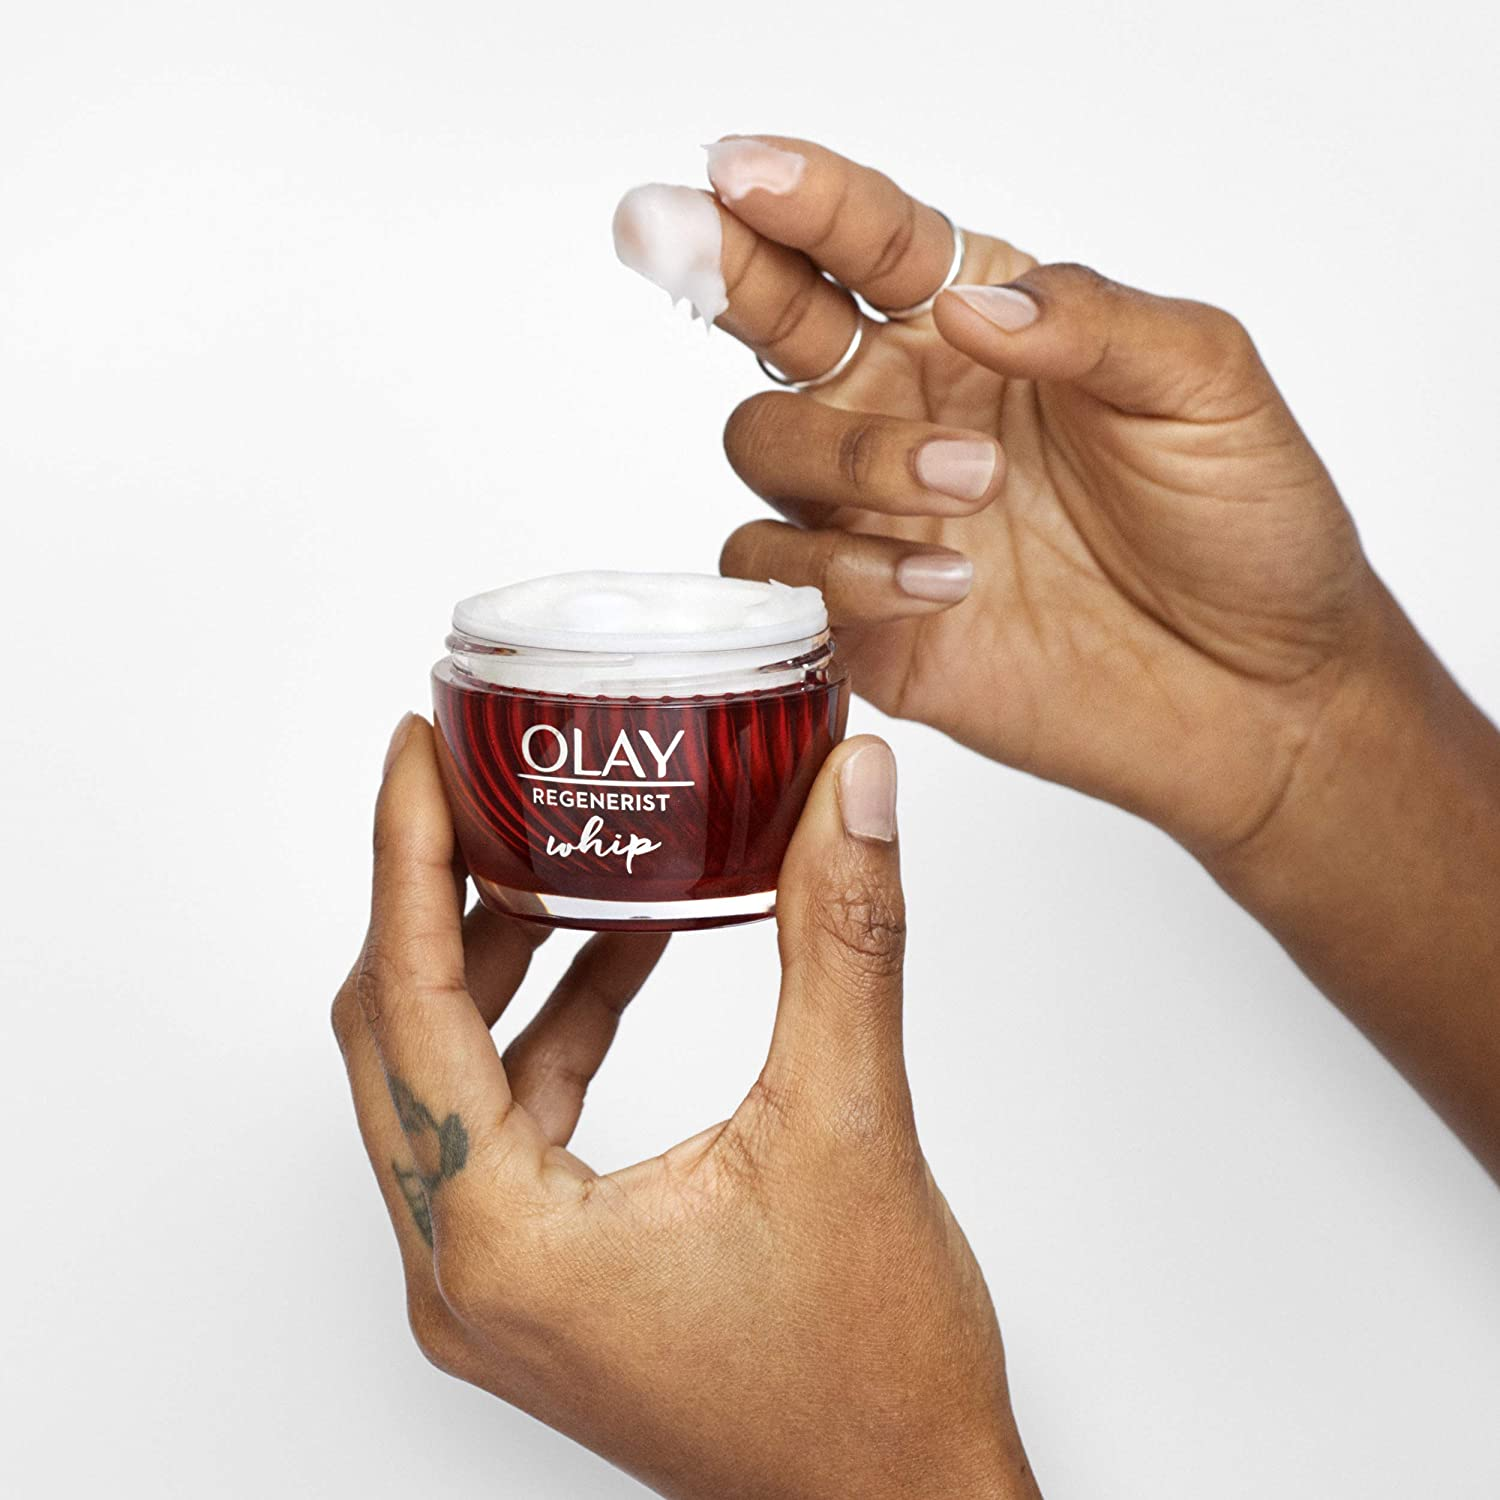 Olay Regenerist Whip Face Moisturizer with Hyaluronic Acid, 1.7 oz: Industrial & Scientific